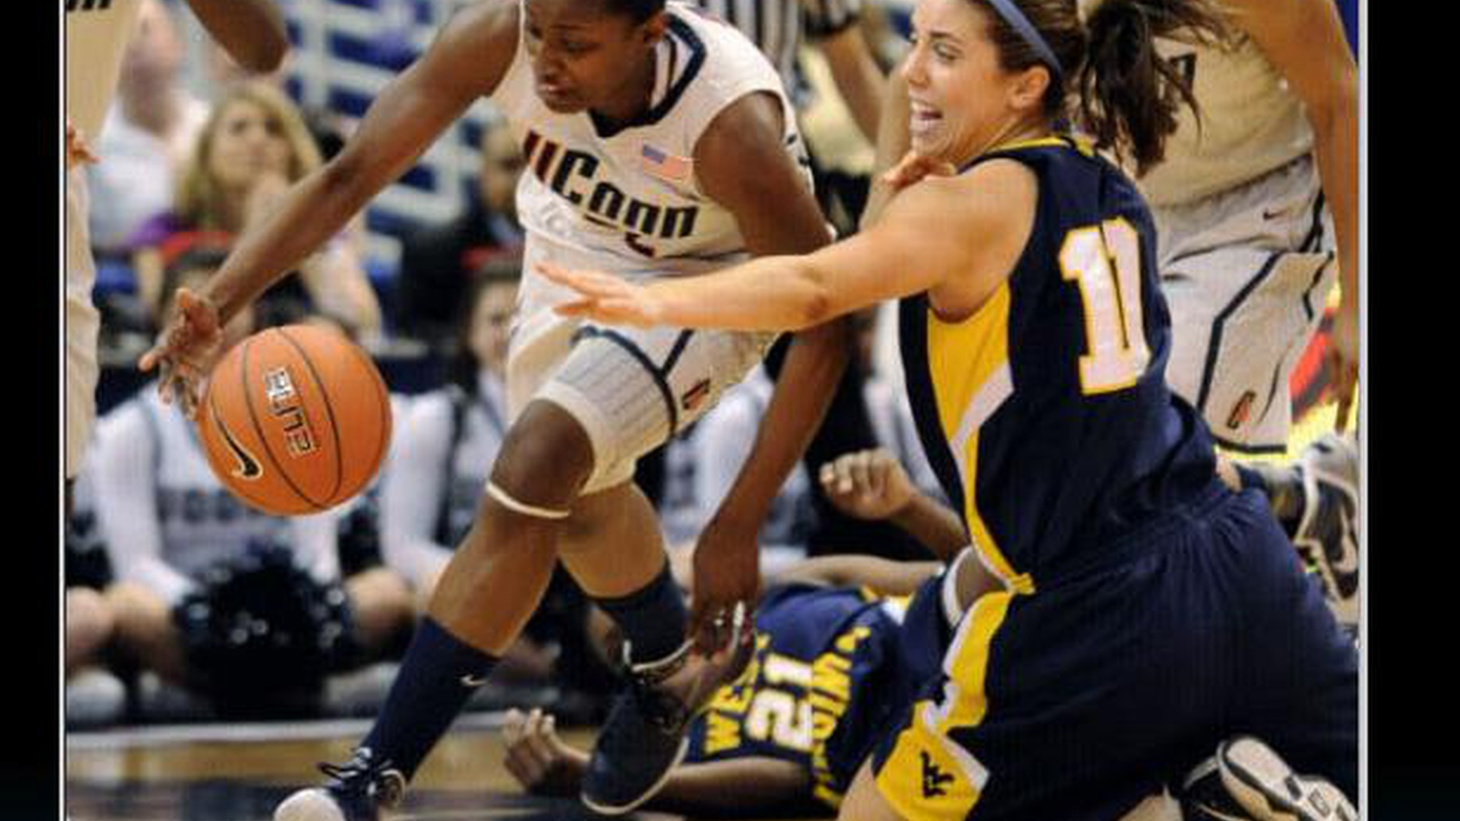 They're touted as a dynasty. One of the greatest teams of any sport, any era. That's women's basketball out of the University of Connecticut, currently on a tear of 72 consecutive unbeaten games. The Lady Huskies won their 16th Big East title last week, whooping West Virginia in a lop-sided score of 60-32. Also last week, #8 in the country Notre Dame went down to UConn by an embarrassing 25. On Sunday the Huskies crushed Syracuse 77-41. The best anybody's done against UConn this season has been the supposedly supreme squad out of Stanford, but the Cardinal's best only brought them to within 12 points of the dominant Huskies...